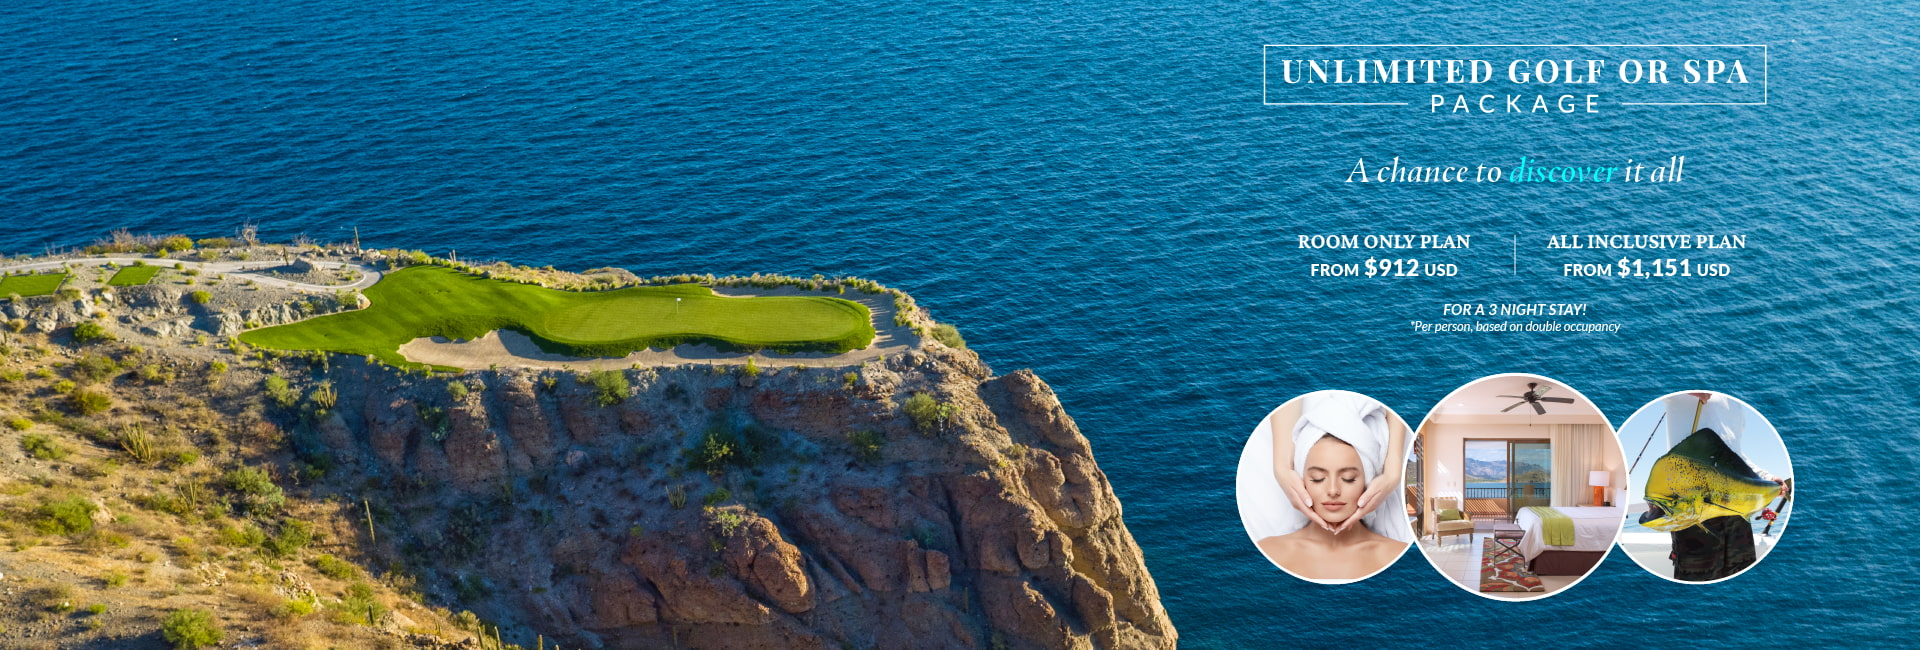 Villa del Palmar Loreto Unlimited Golf or Spa